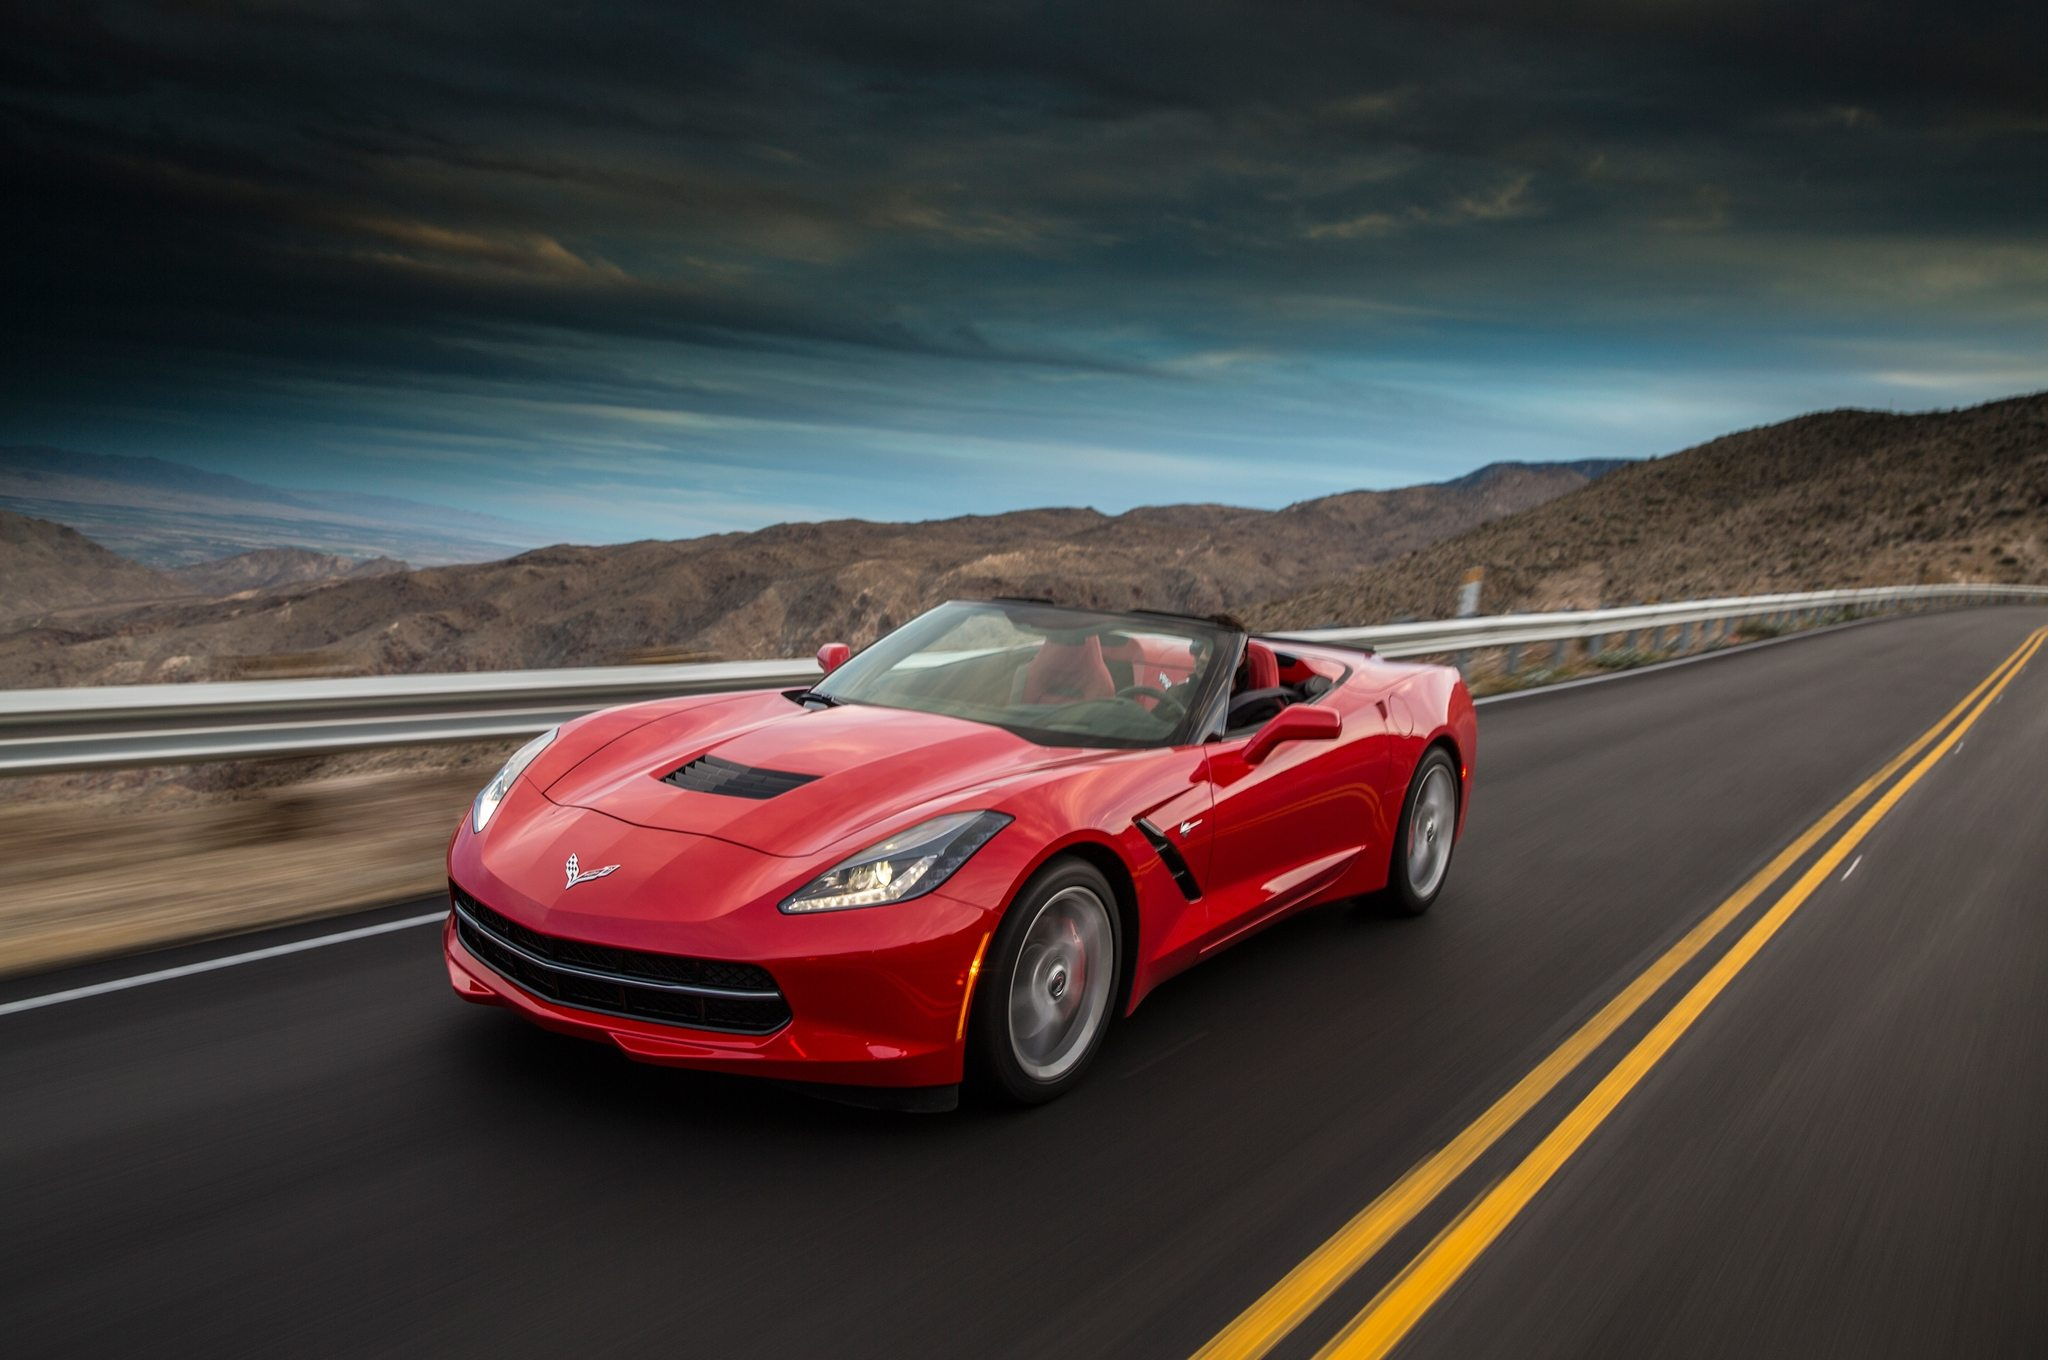 2014 Chevrolet Corvette Stingray Wallpaper Wide Desktop L2lz0